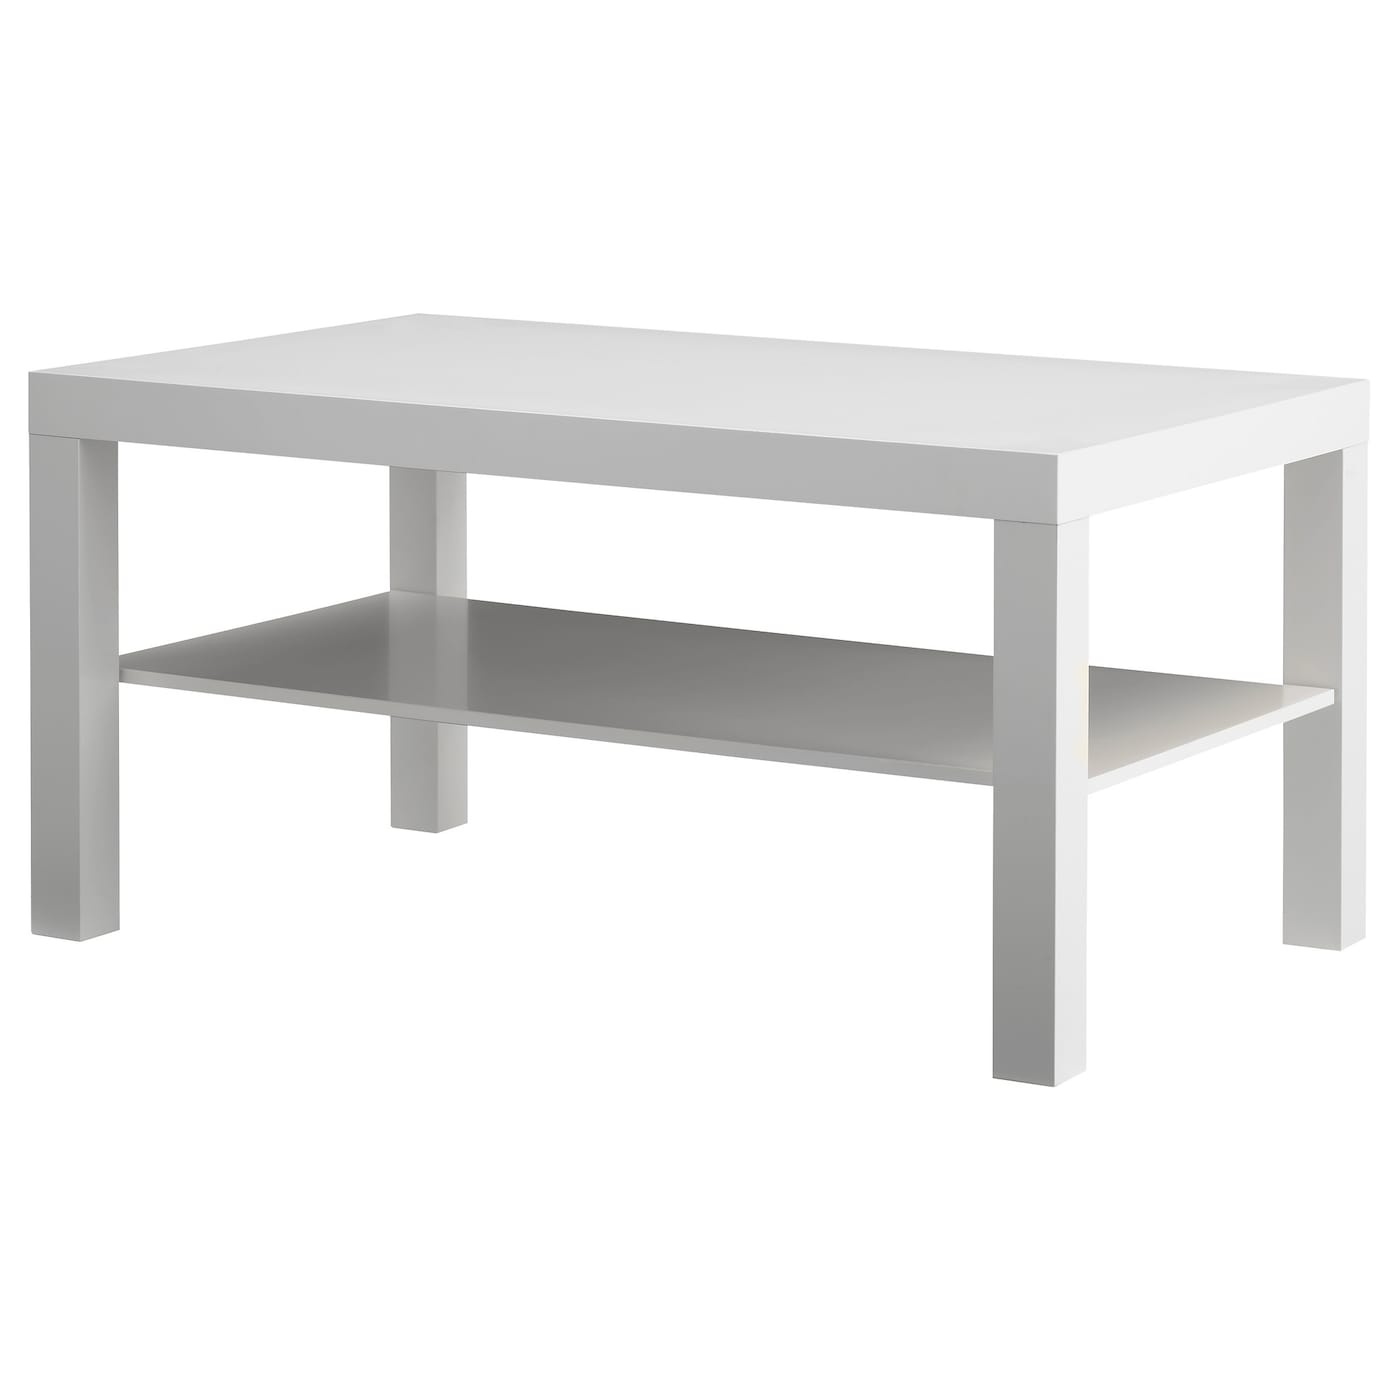 Lack coffee table white 90x55 cm ikea - Table basse pliante ikea ...